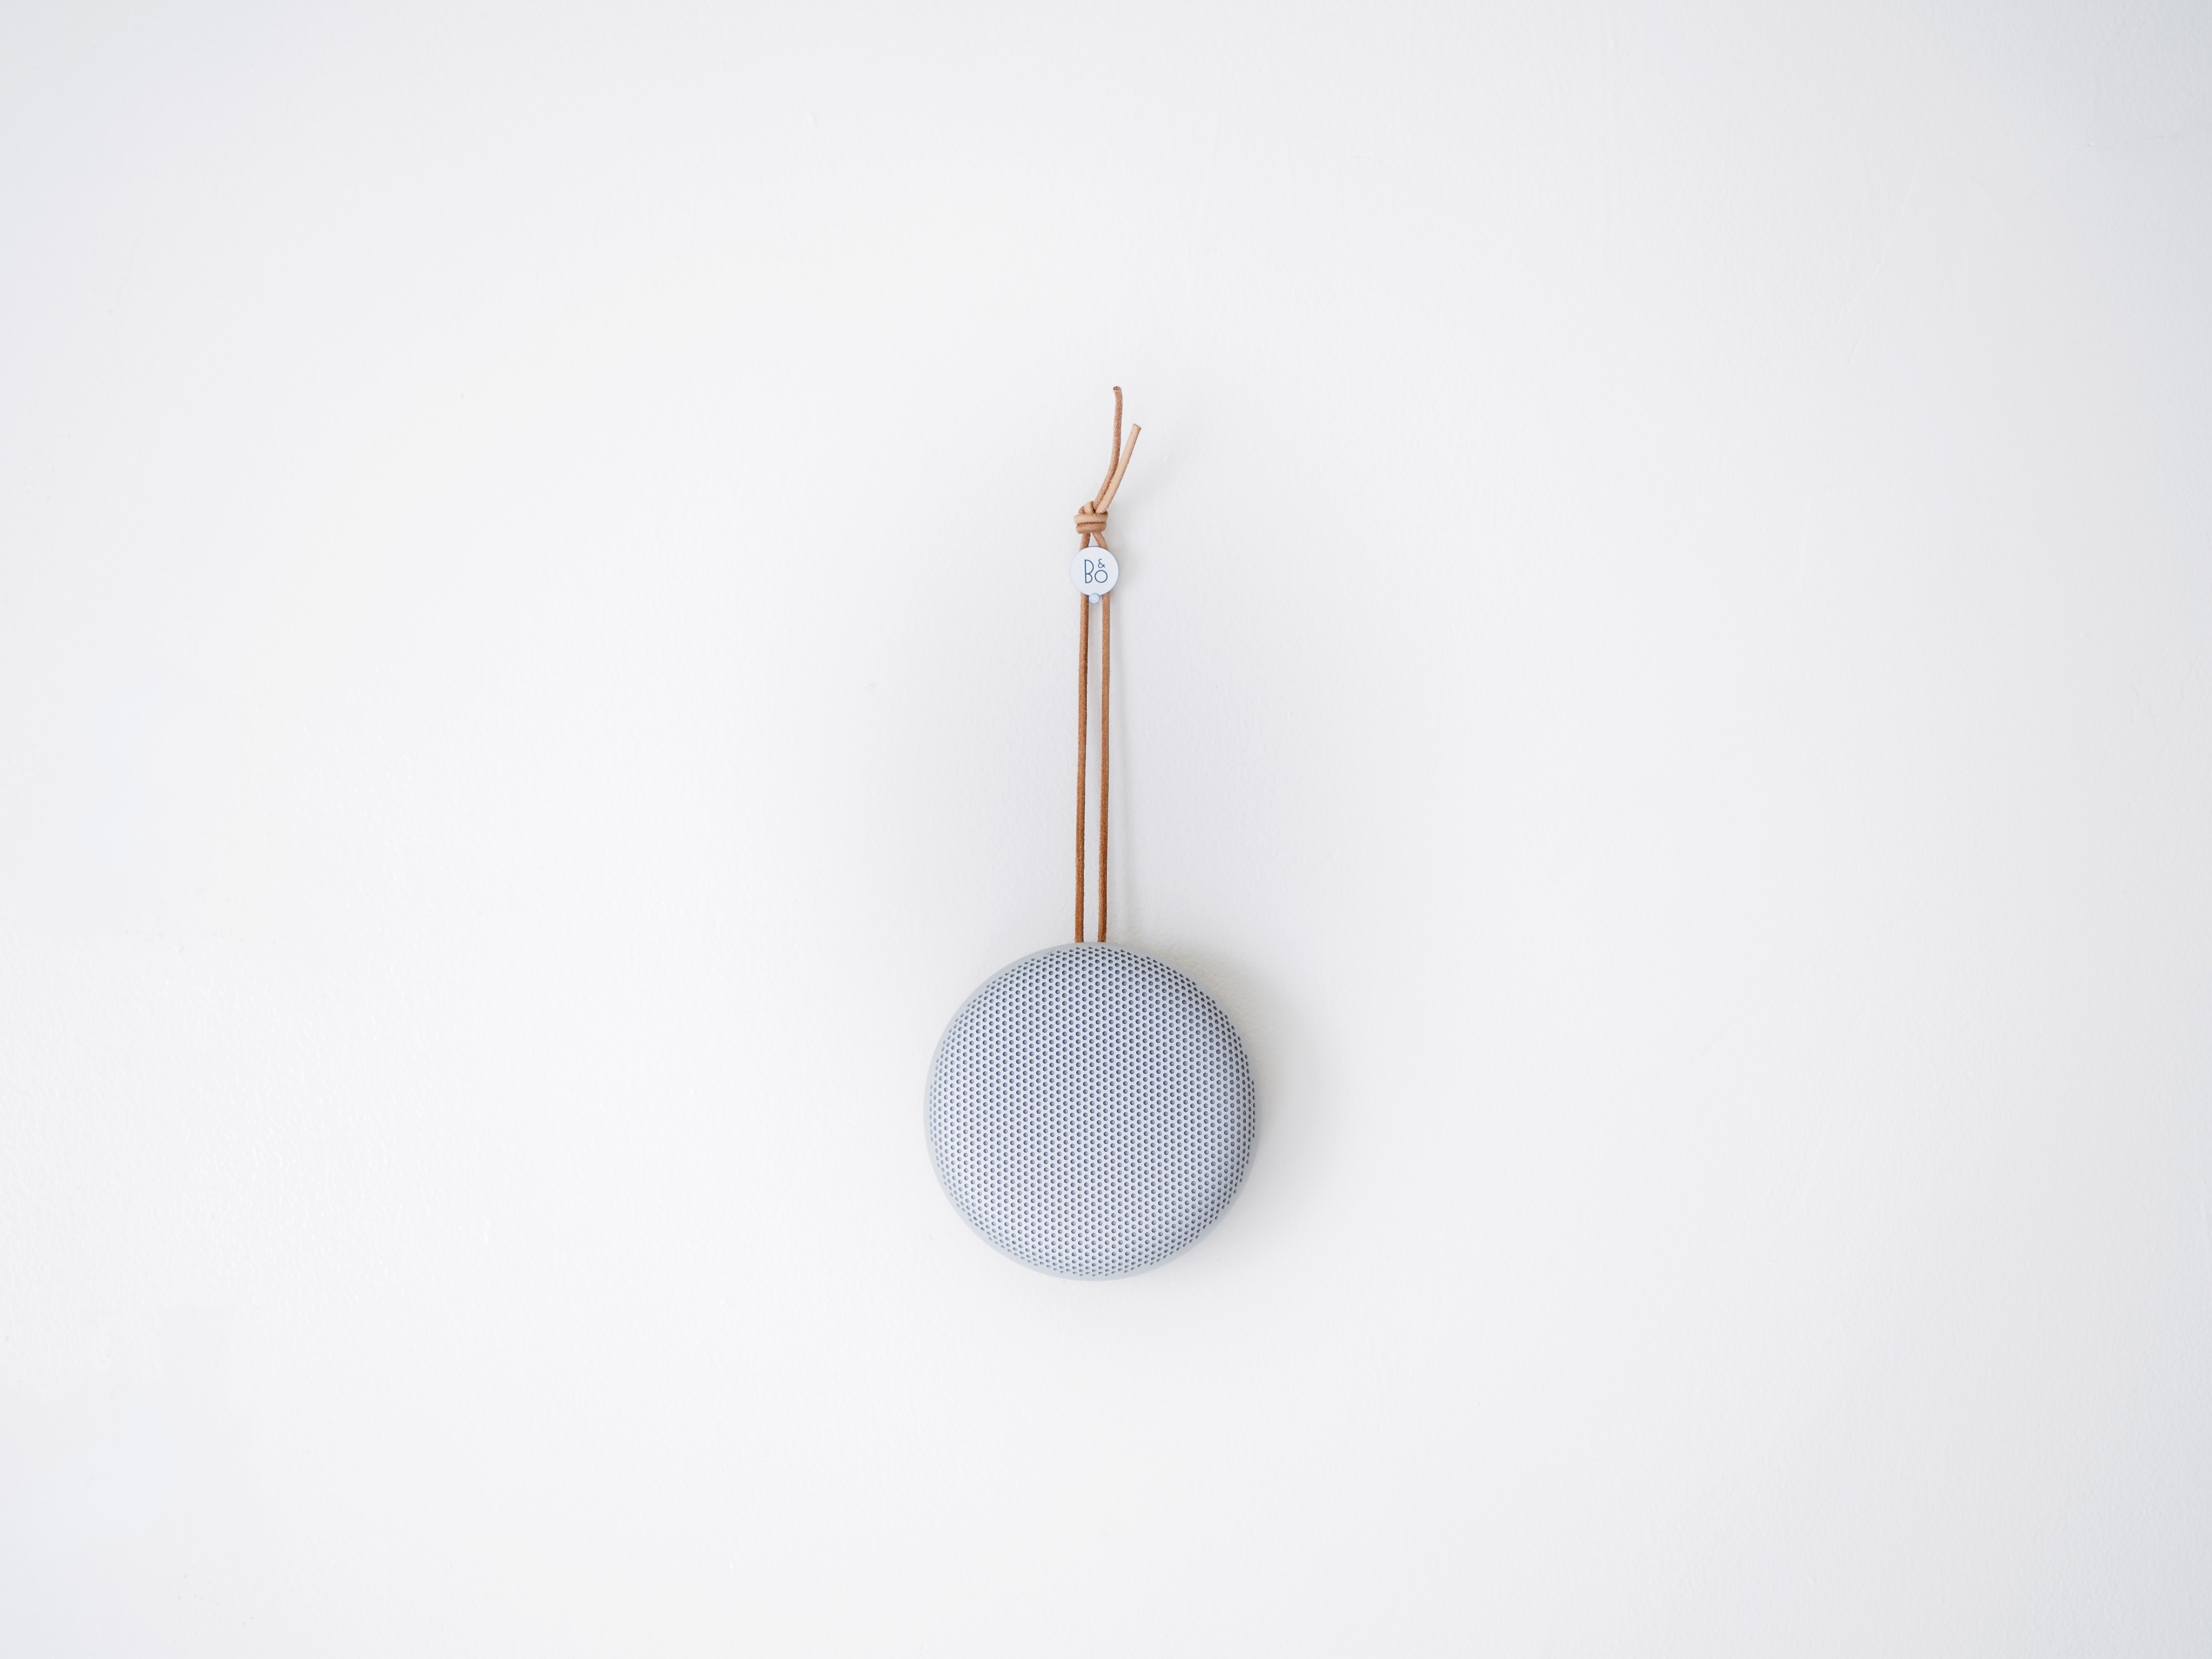 round grey hanging decor on white wall